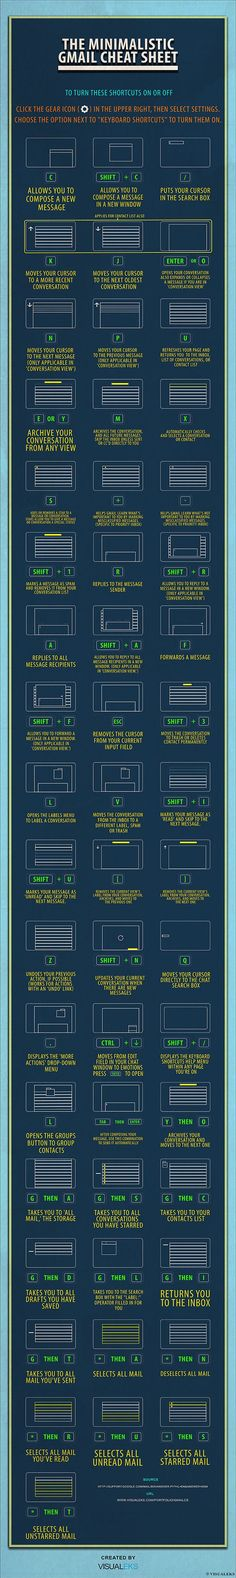 The Minimalistic Gmail Cheat Sheet #infographic